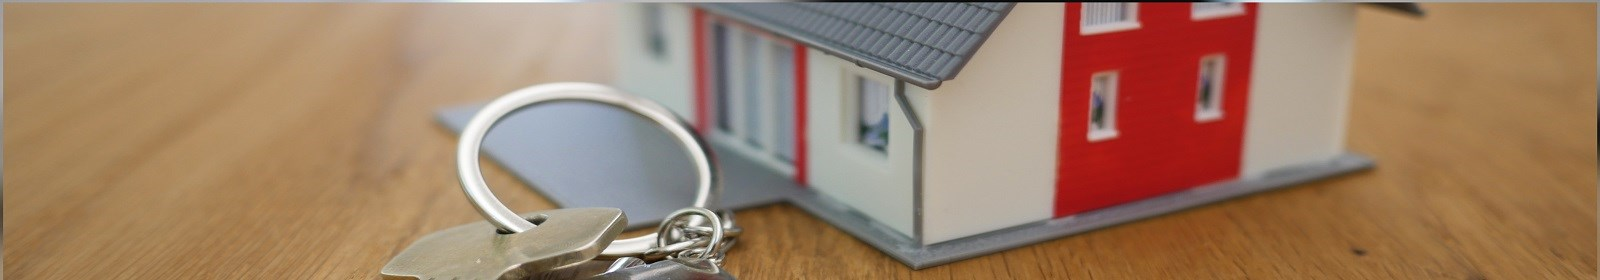 Affordability, good conduct vital to lease renewals this year